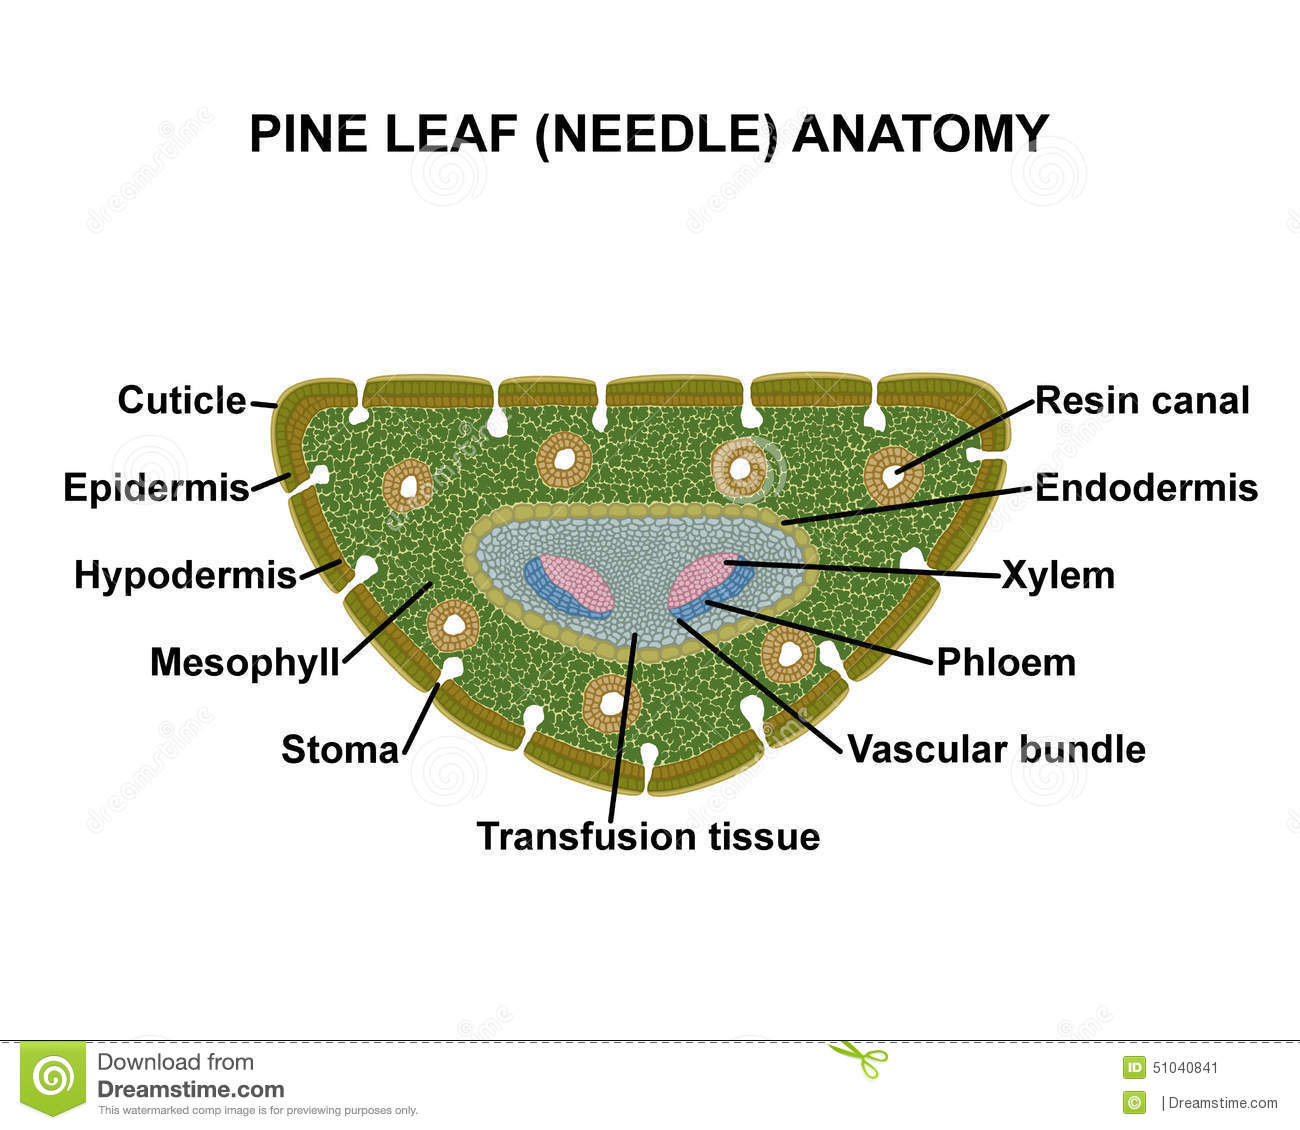 pine-leaf-needle-anatomy-schematic-cross-section-51040841.jpg